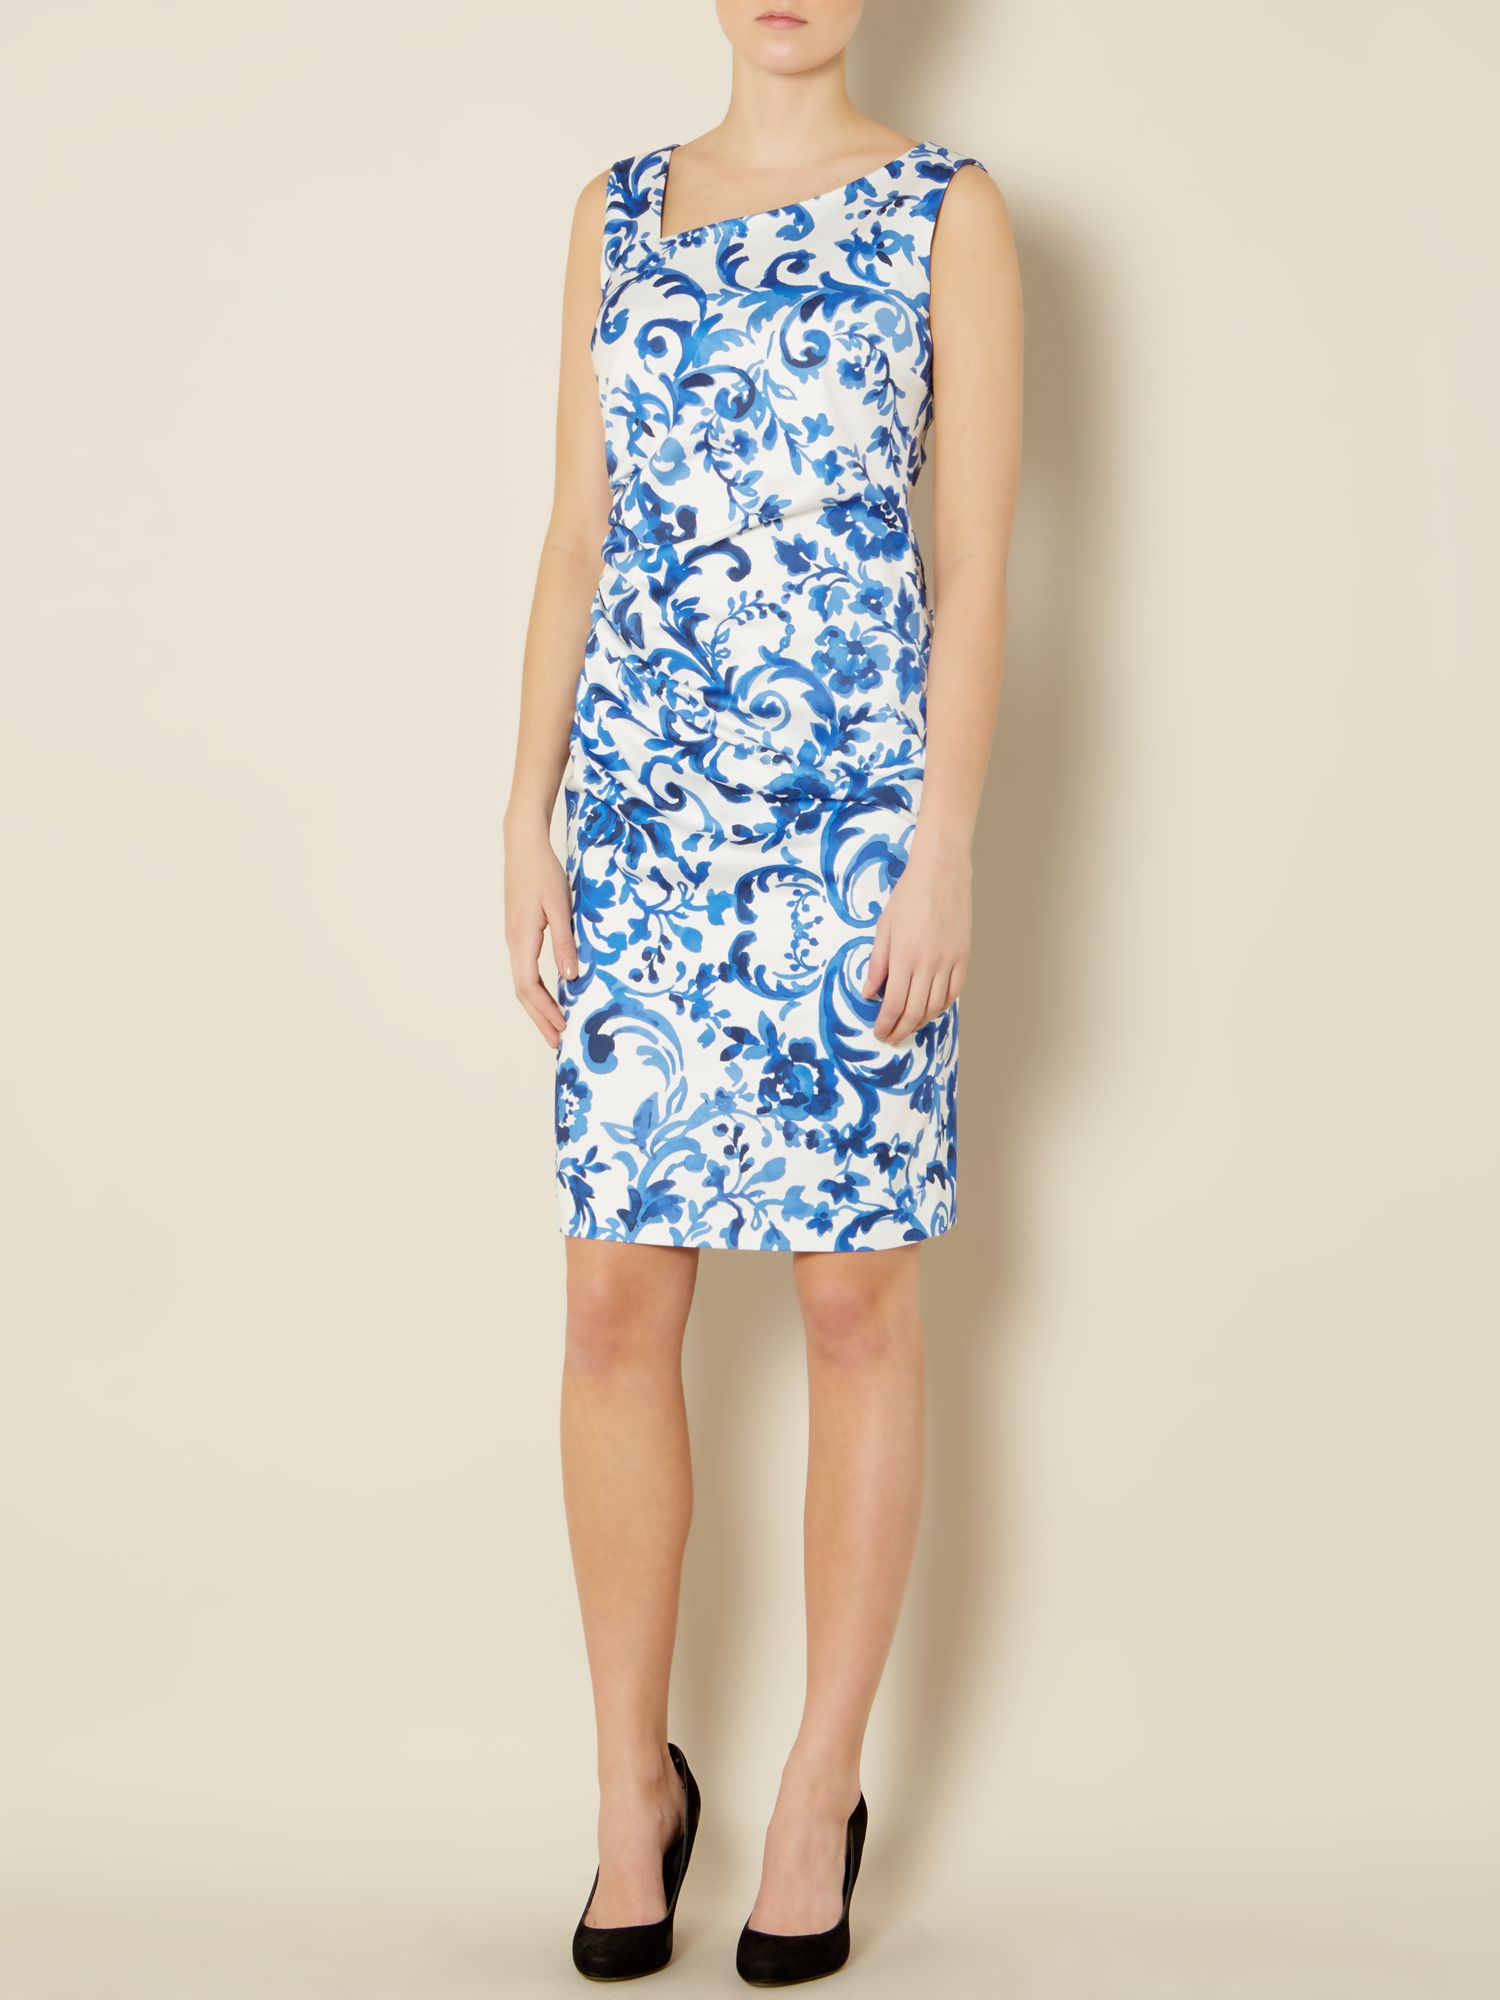 Max Mara Studio Divo Floral Print Dress With Ruched Side